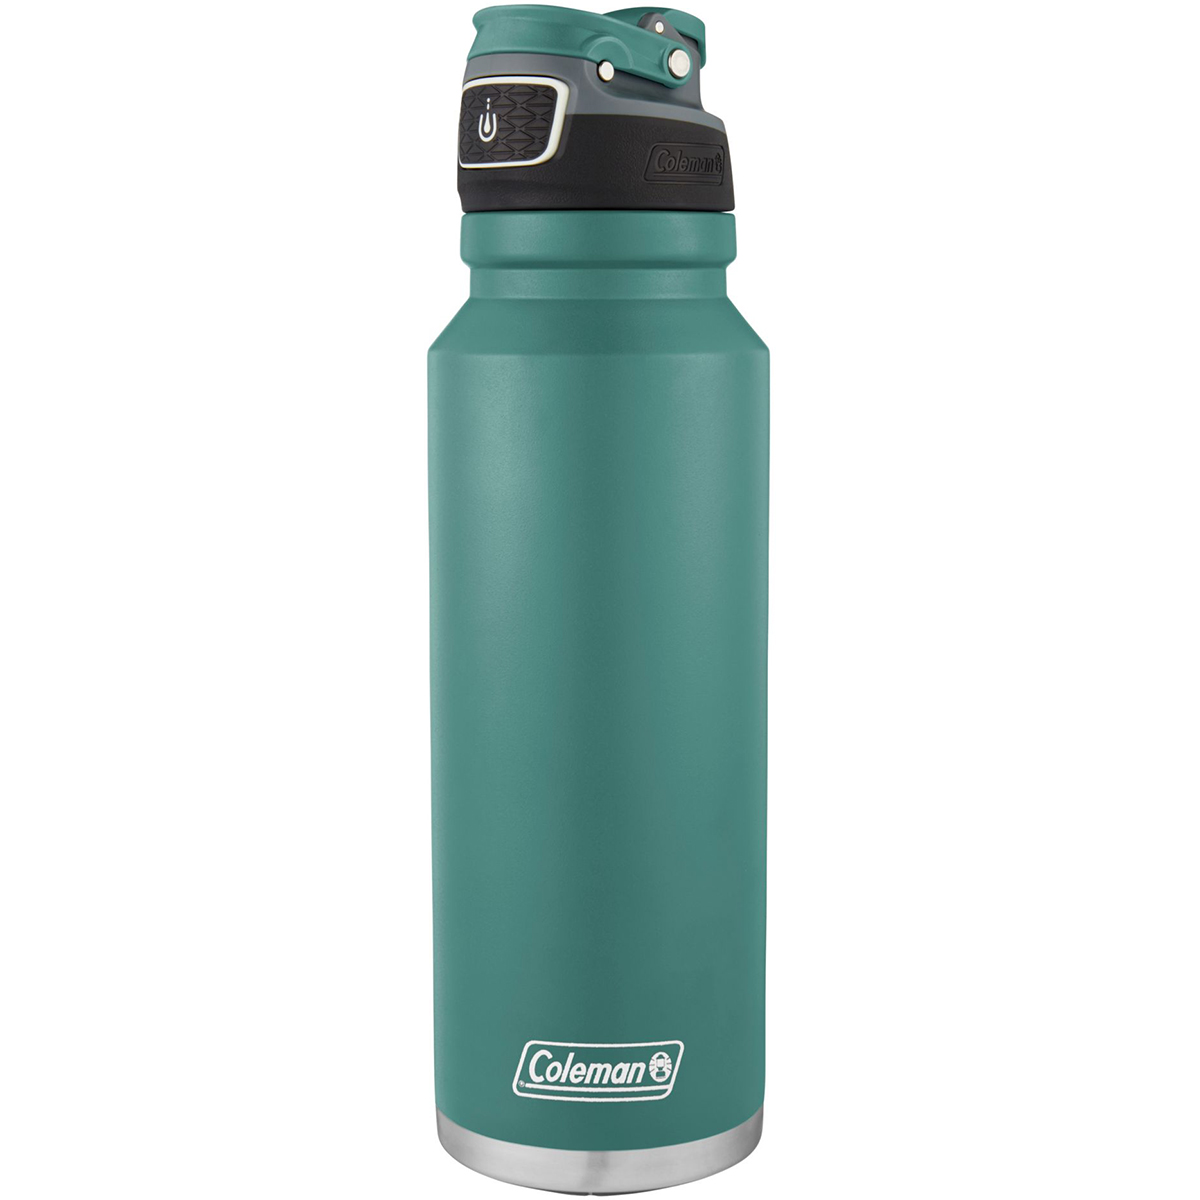 thumbnail 19 - Coleman 40 oz. Free Flow Autoseal Insulated Stainless Steel Water Bottle